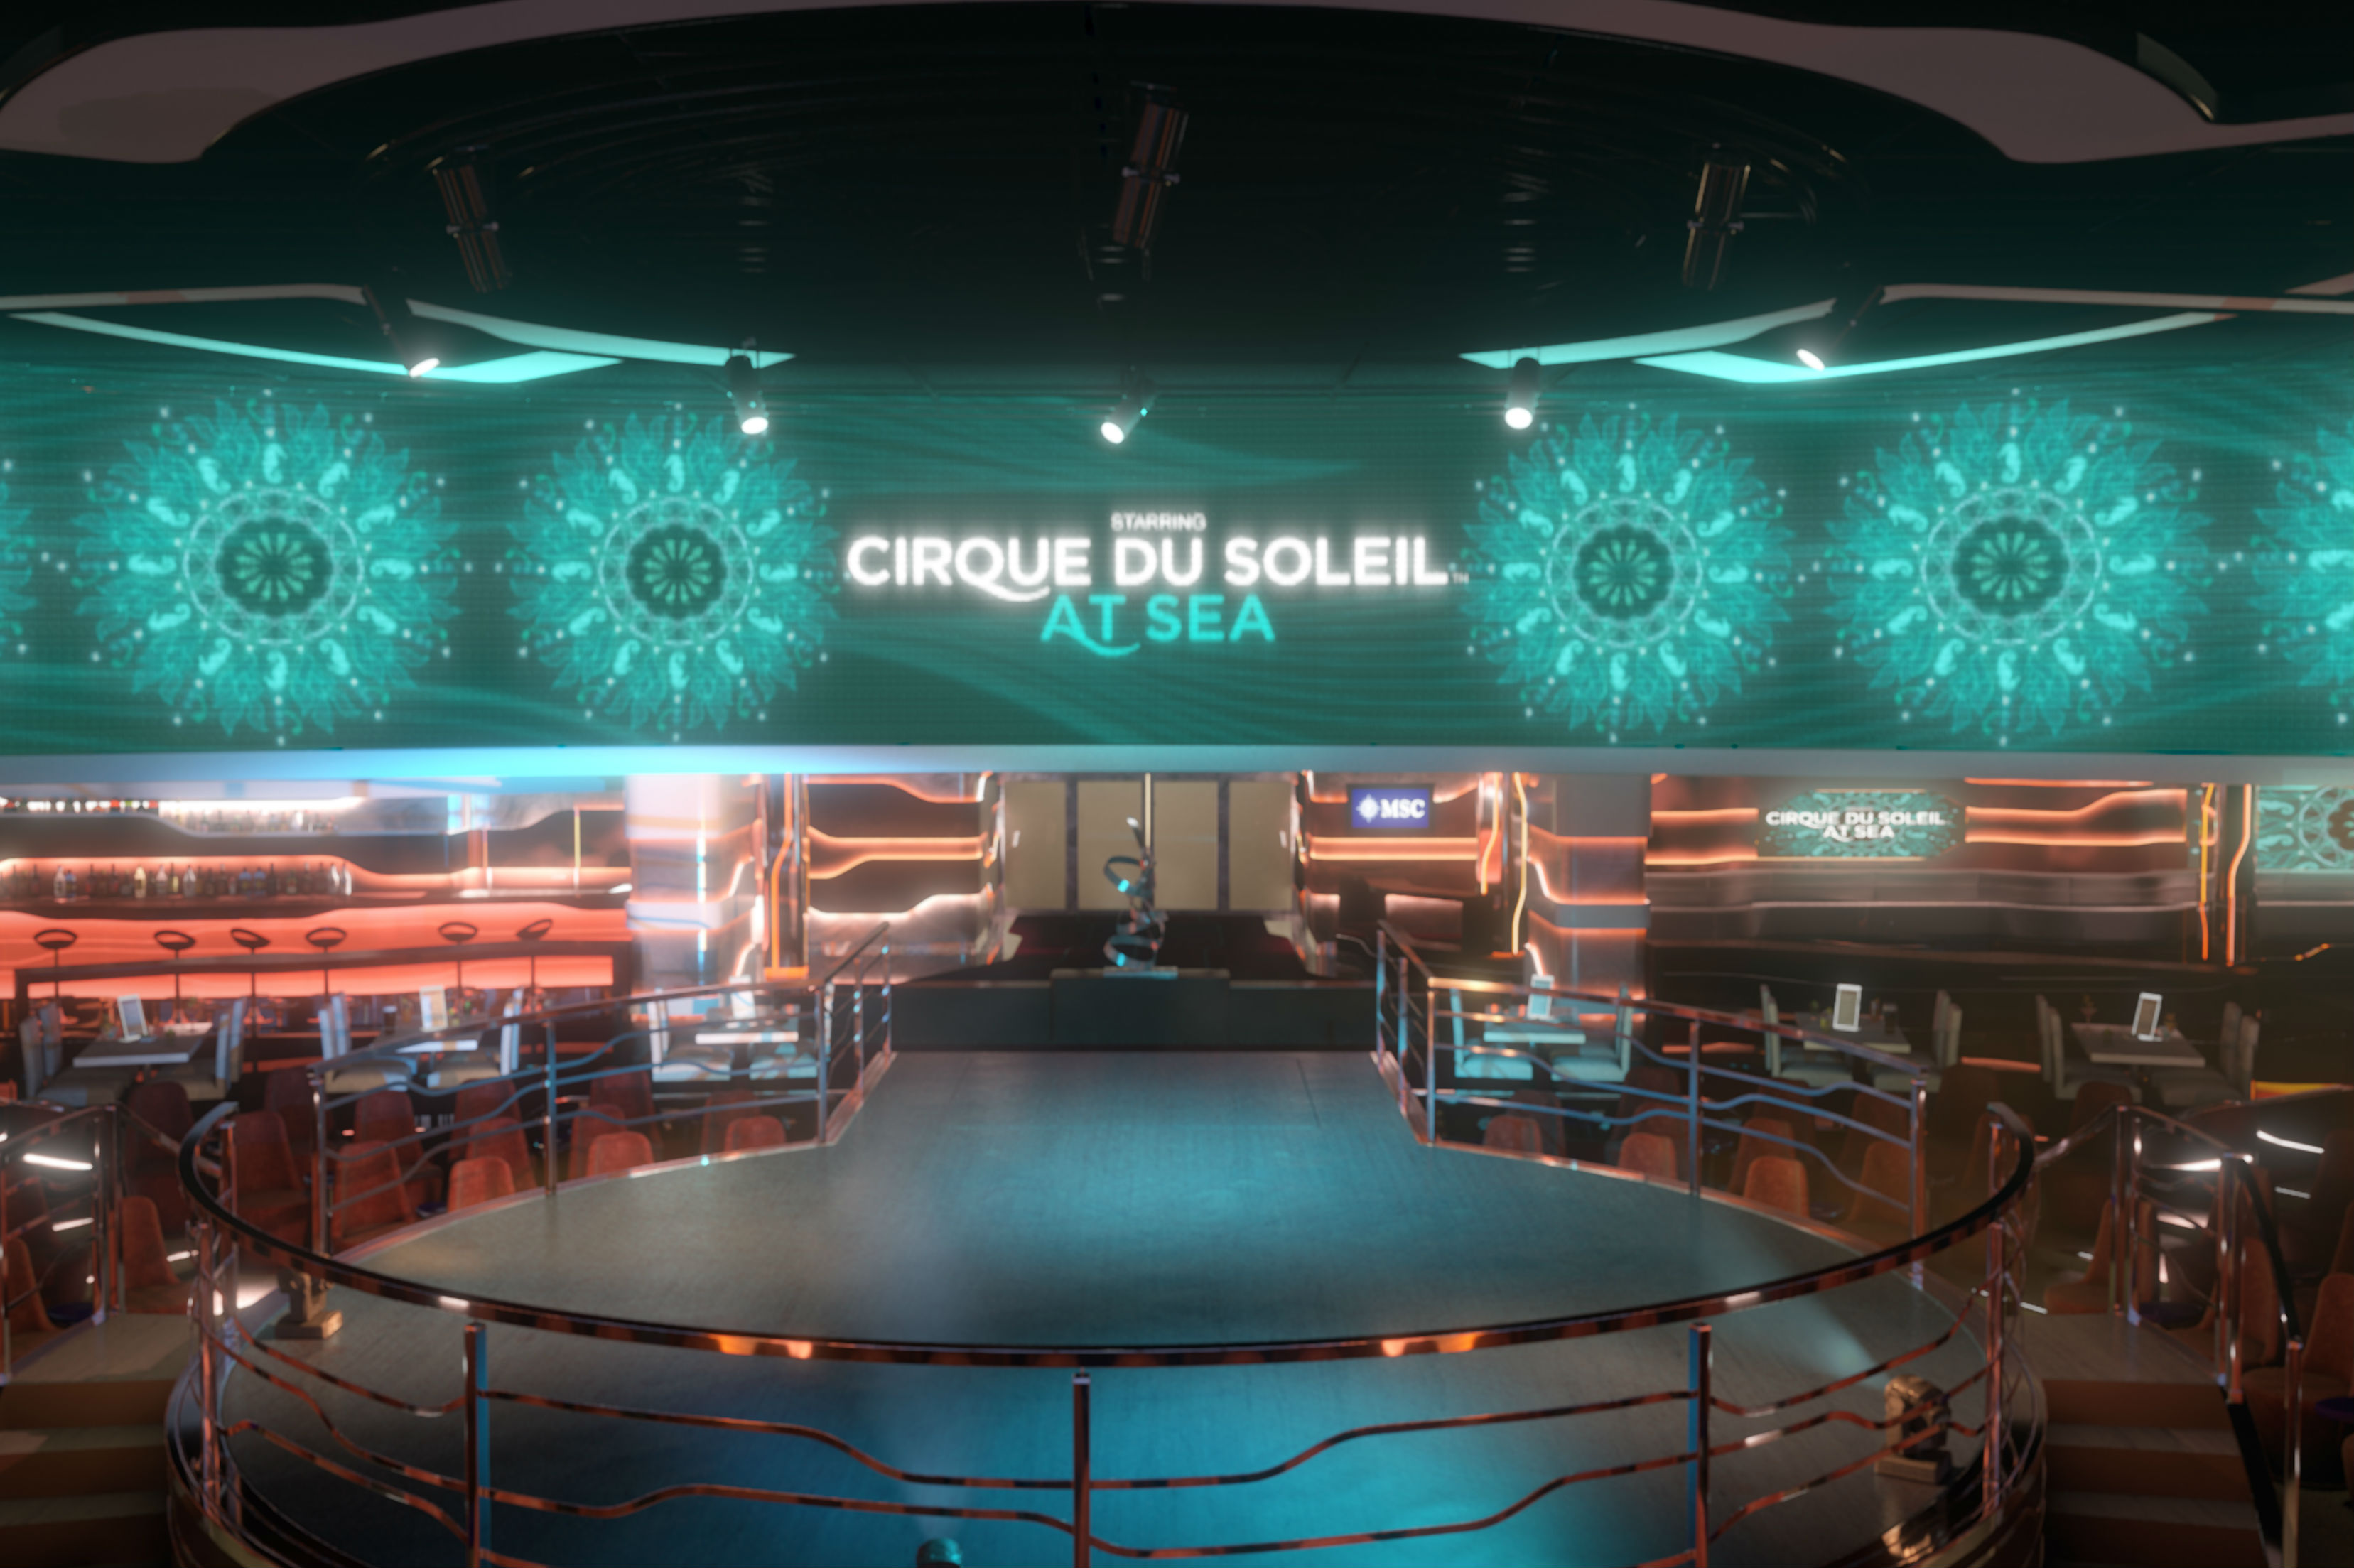 New Cirque du Soleil shows